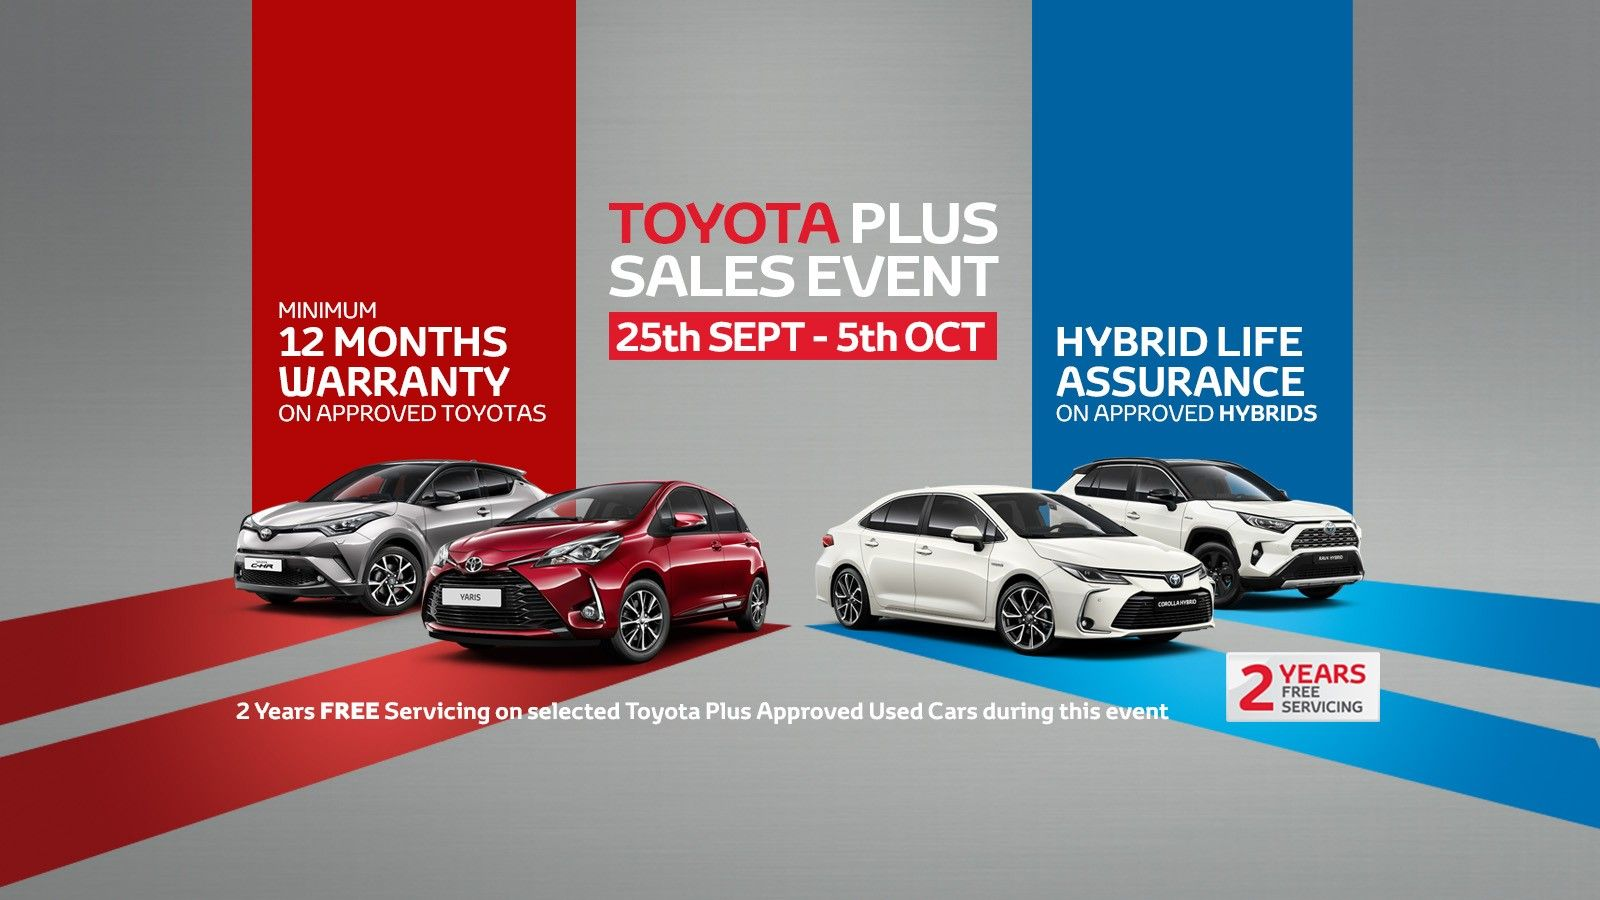 Toyota Plus Used Cars